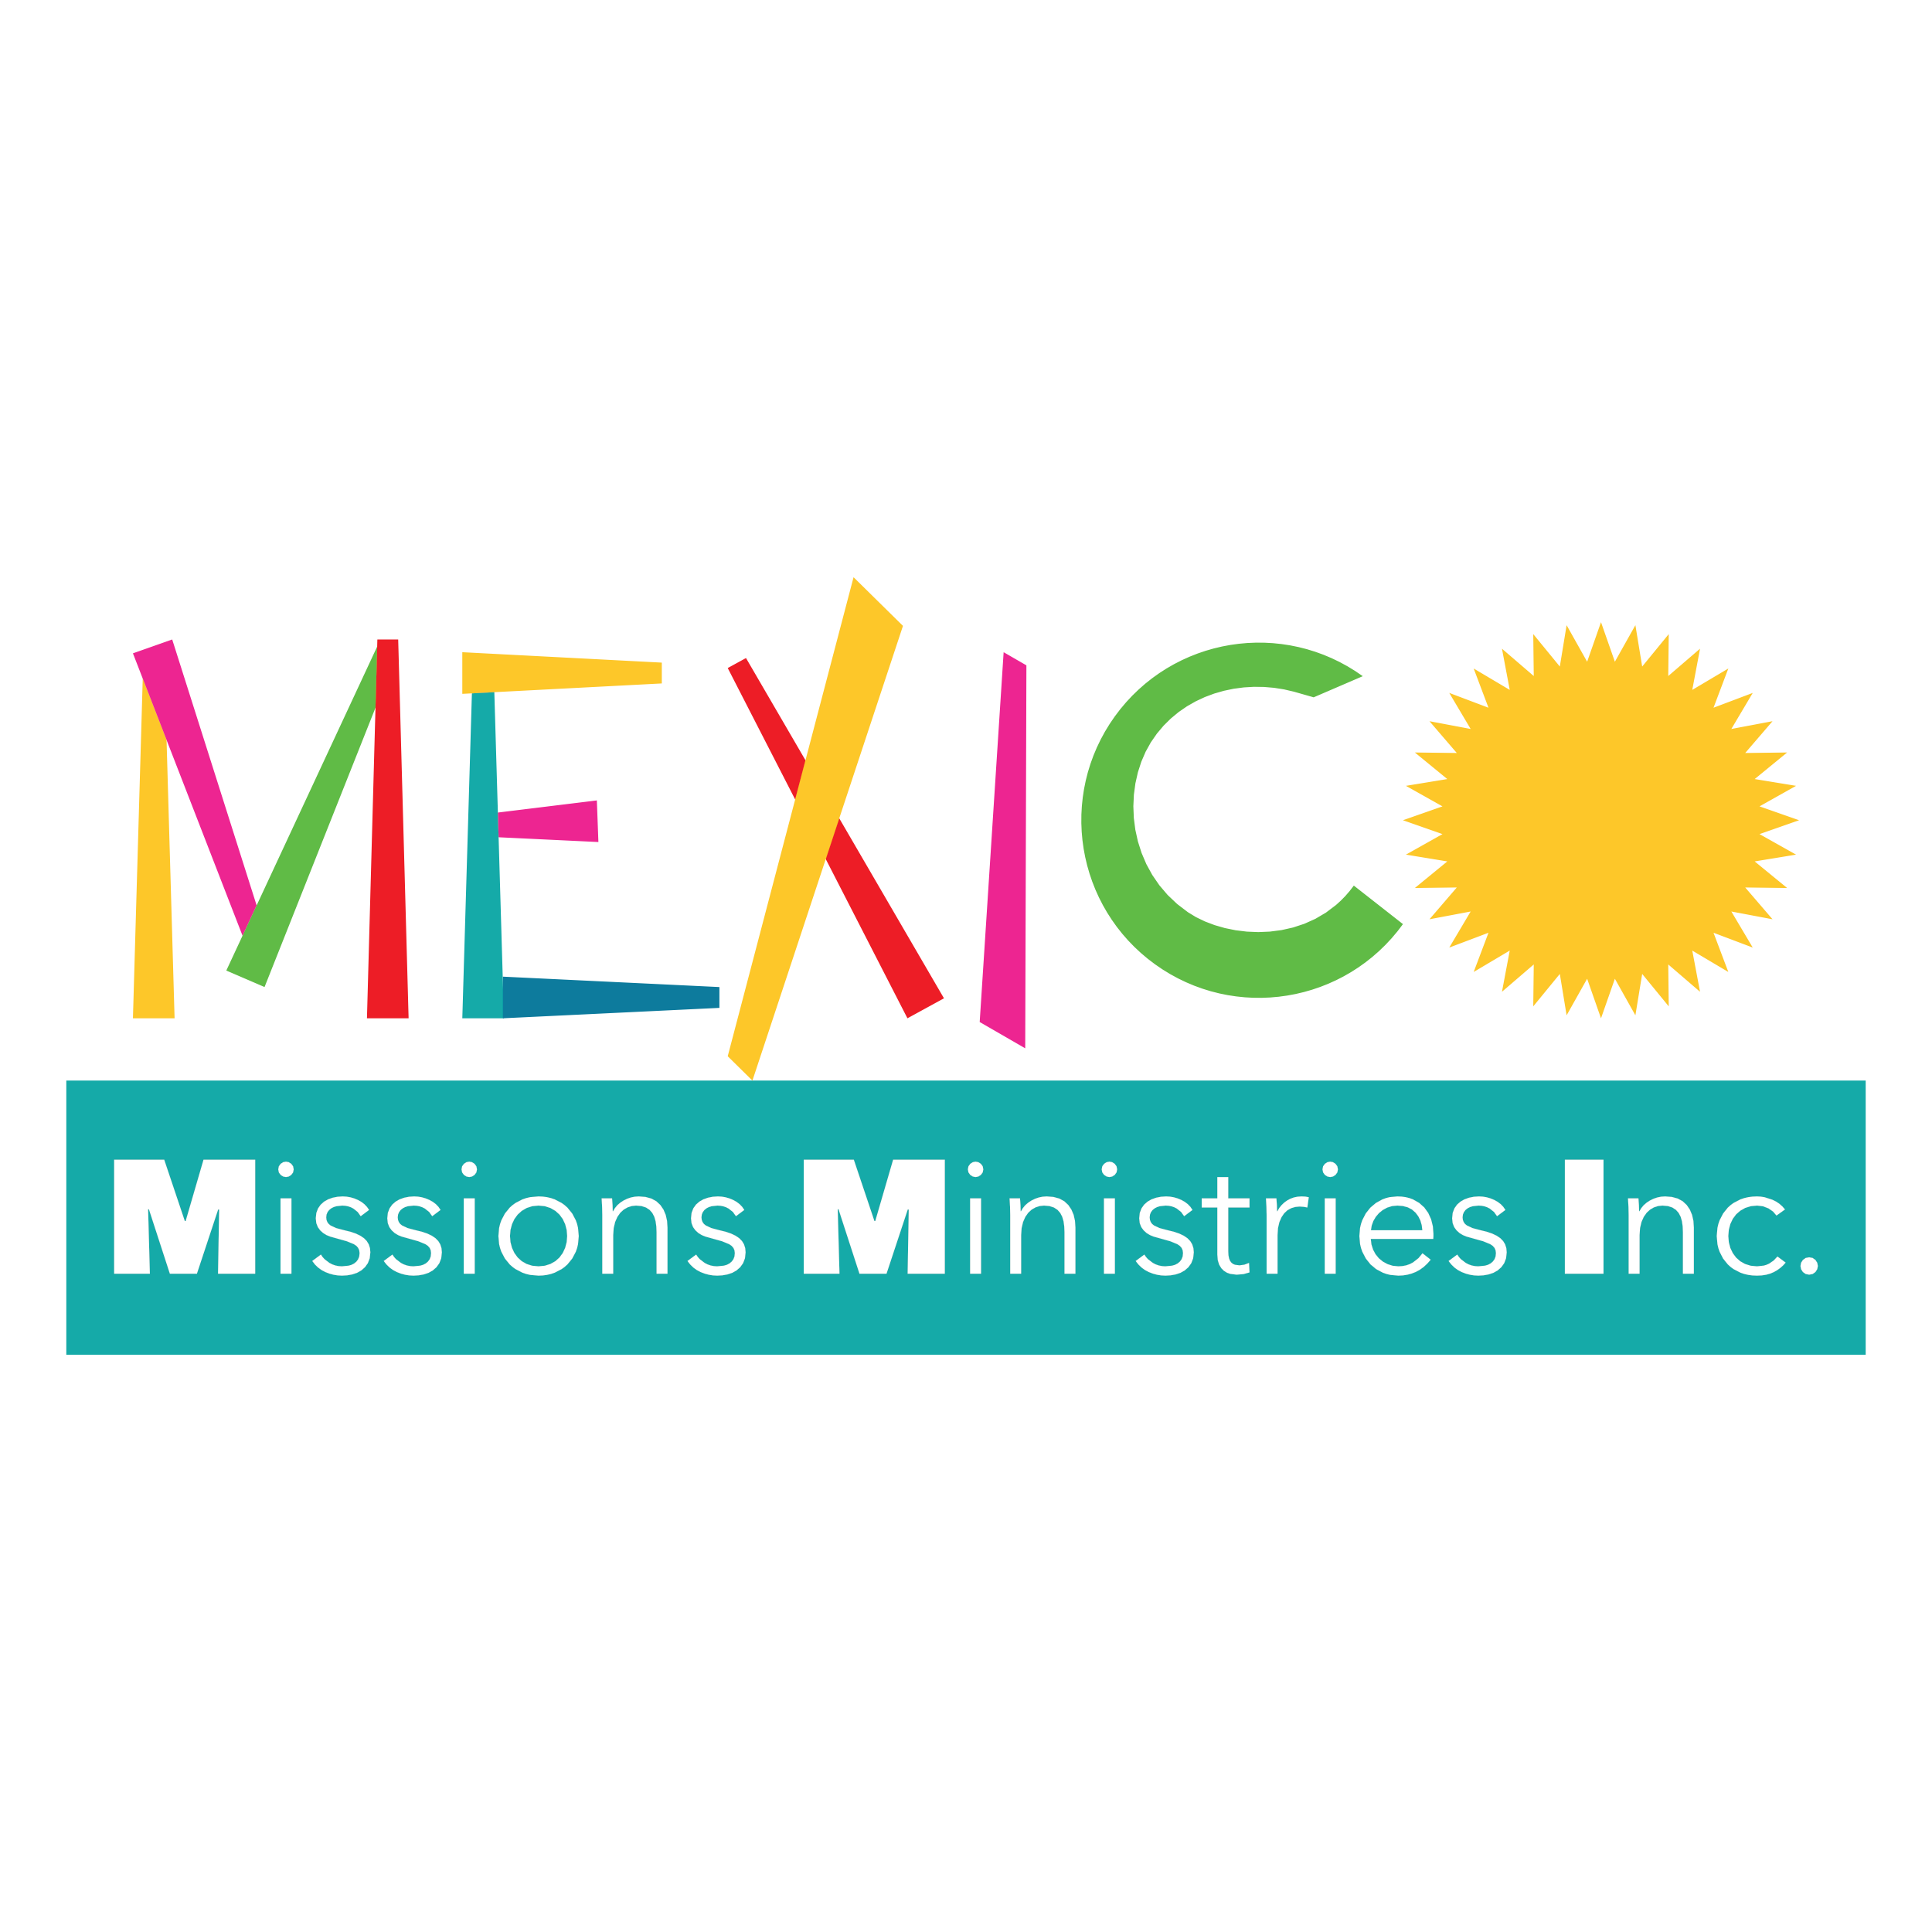 Mexico Missions Ministries Logo